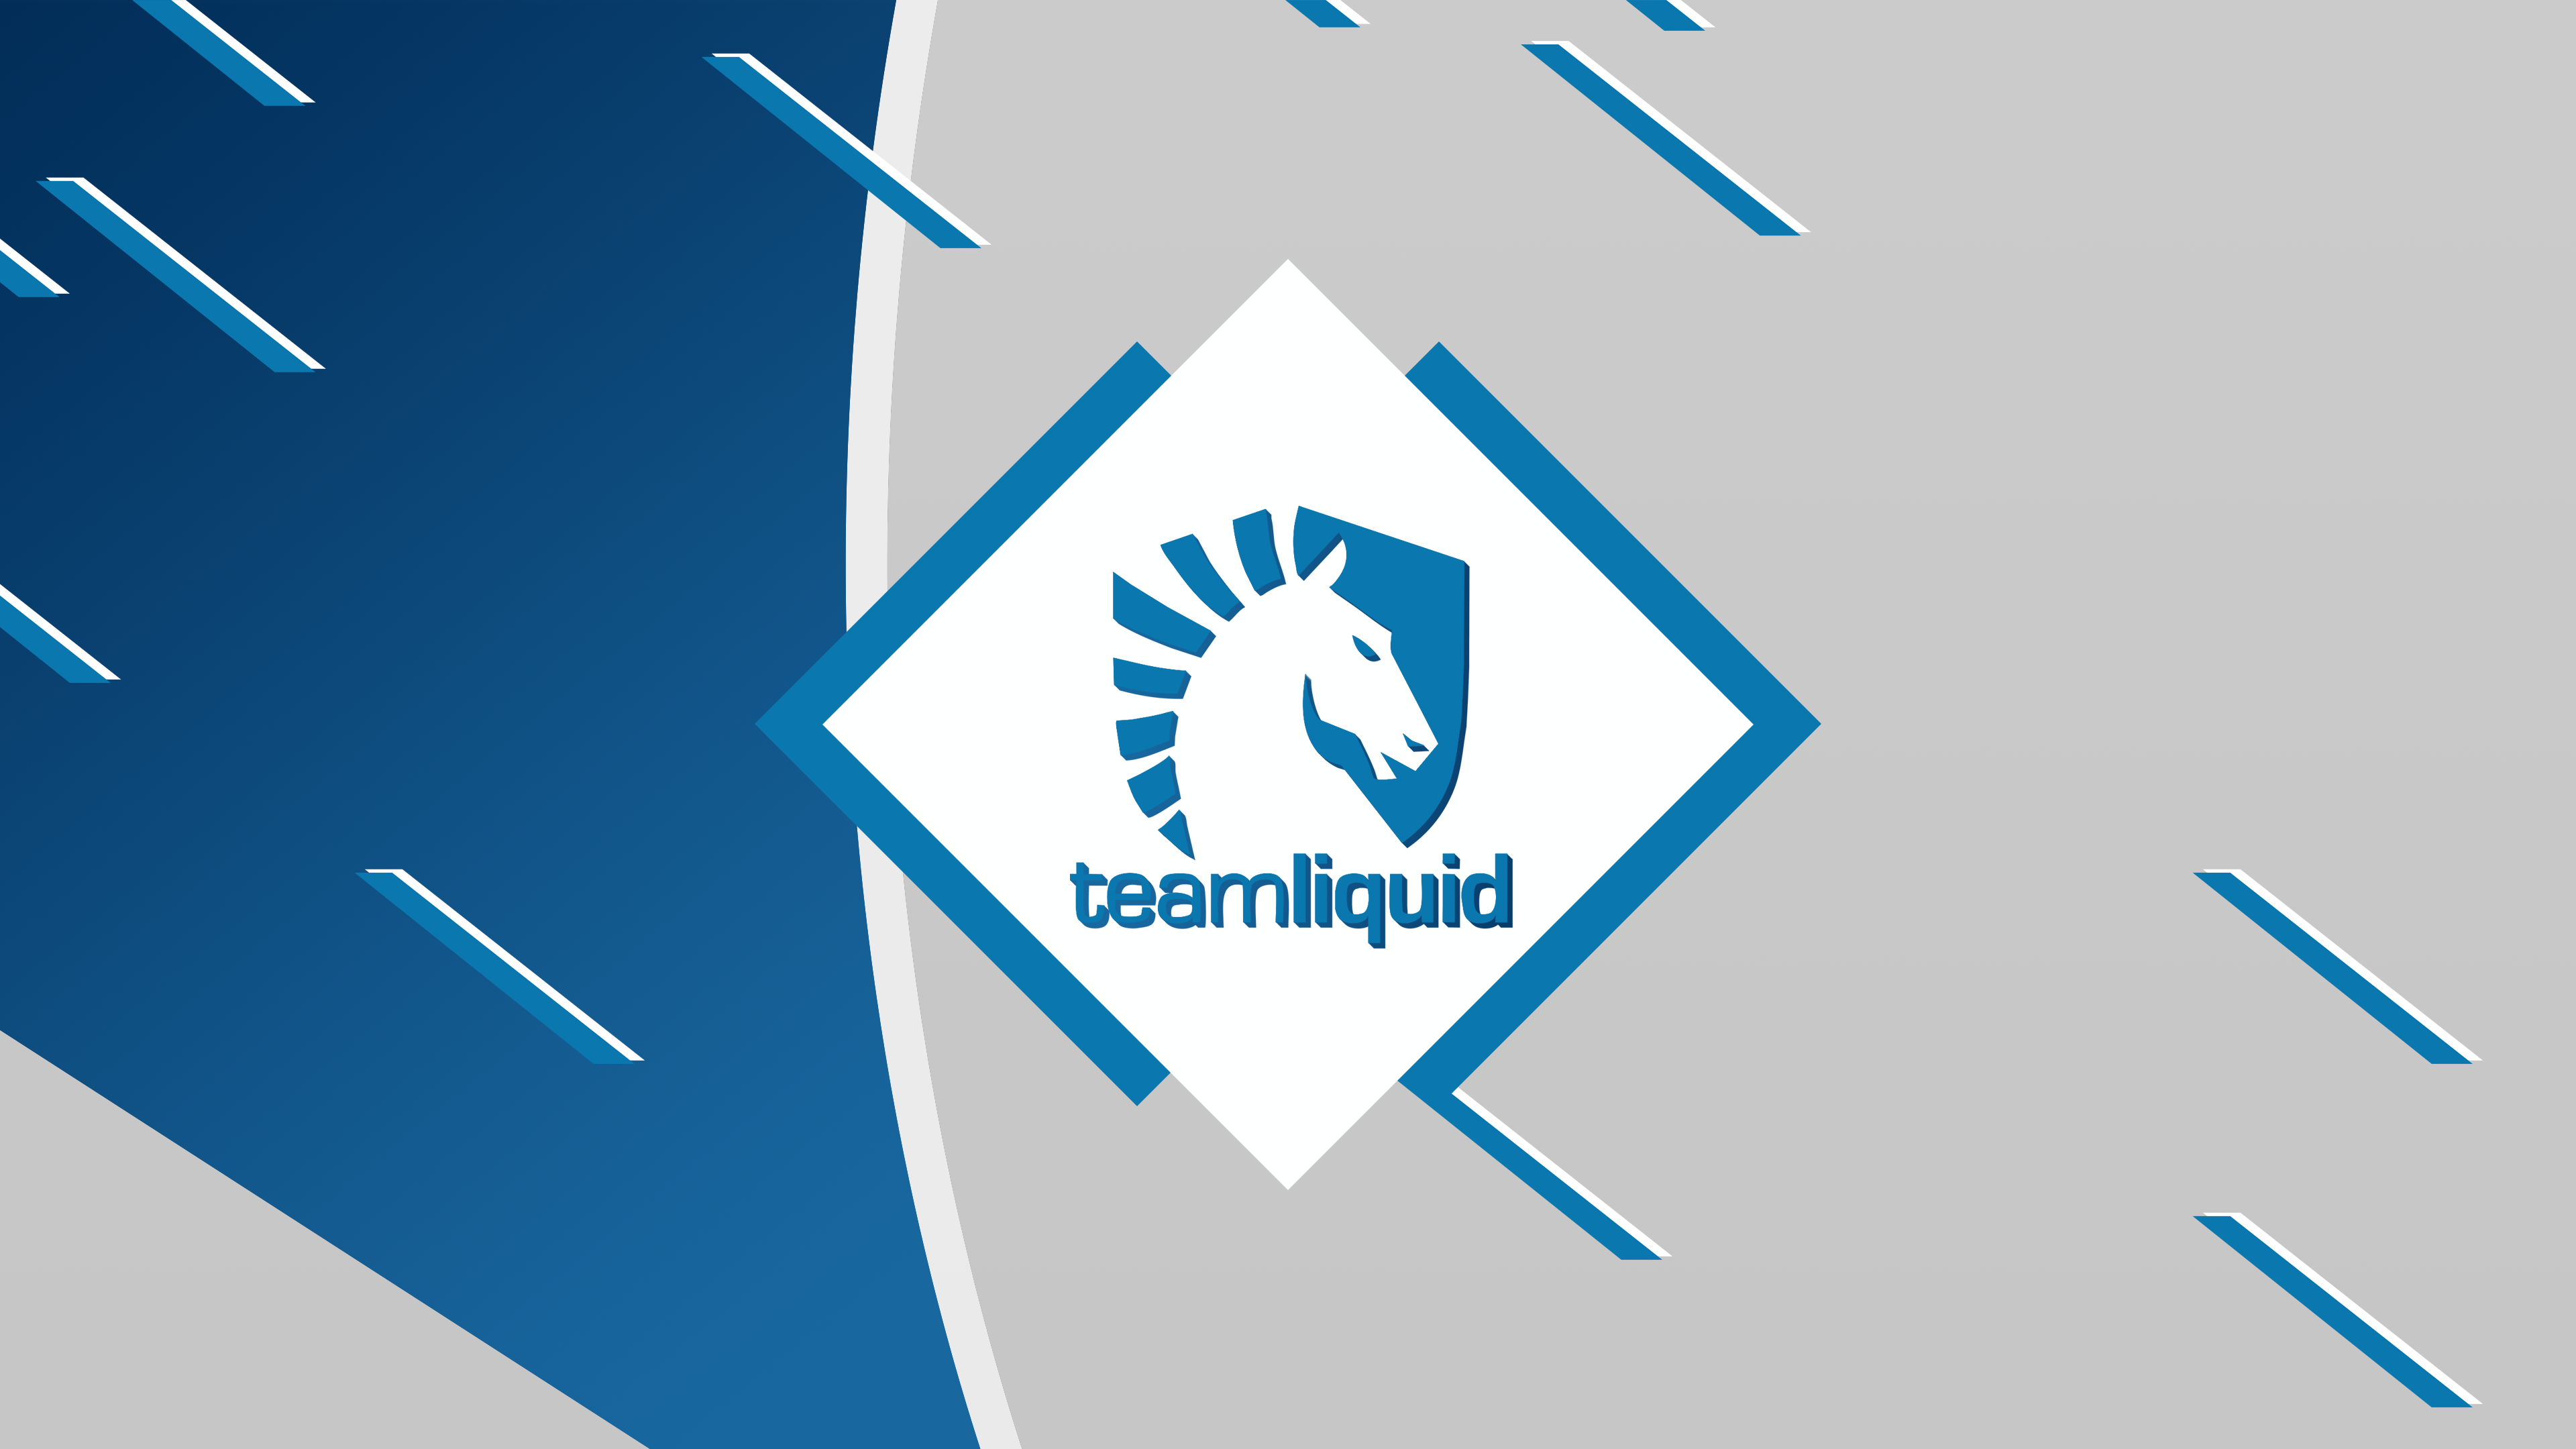 Team Liquid Wallpaper.